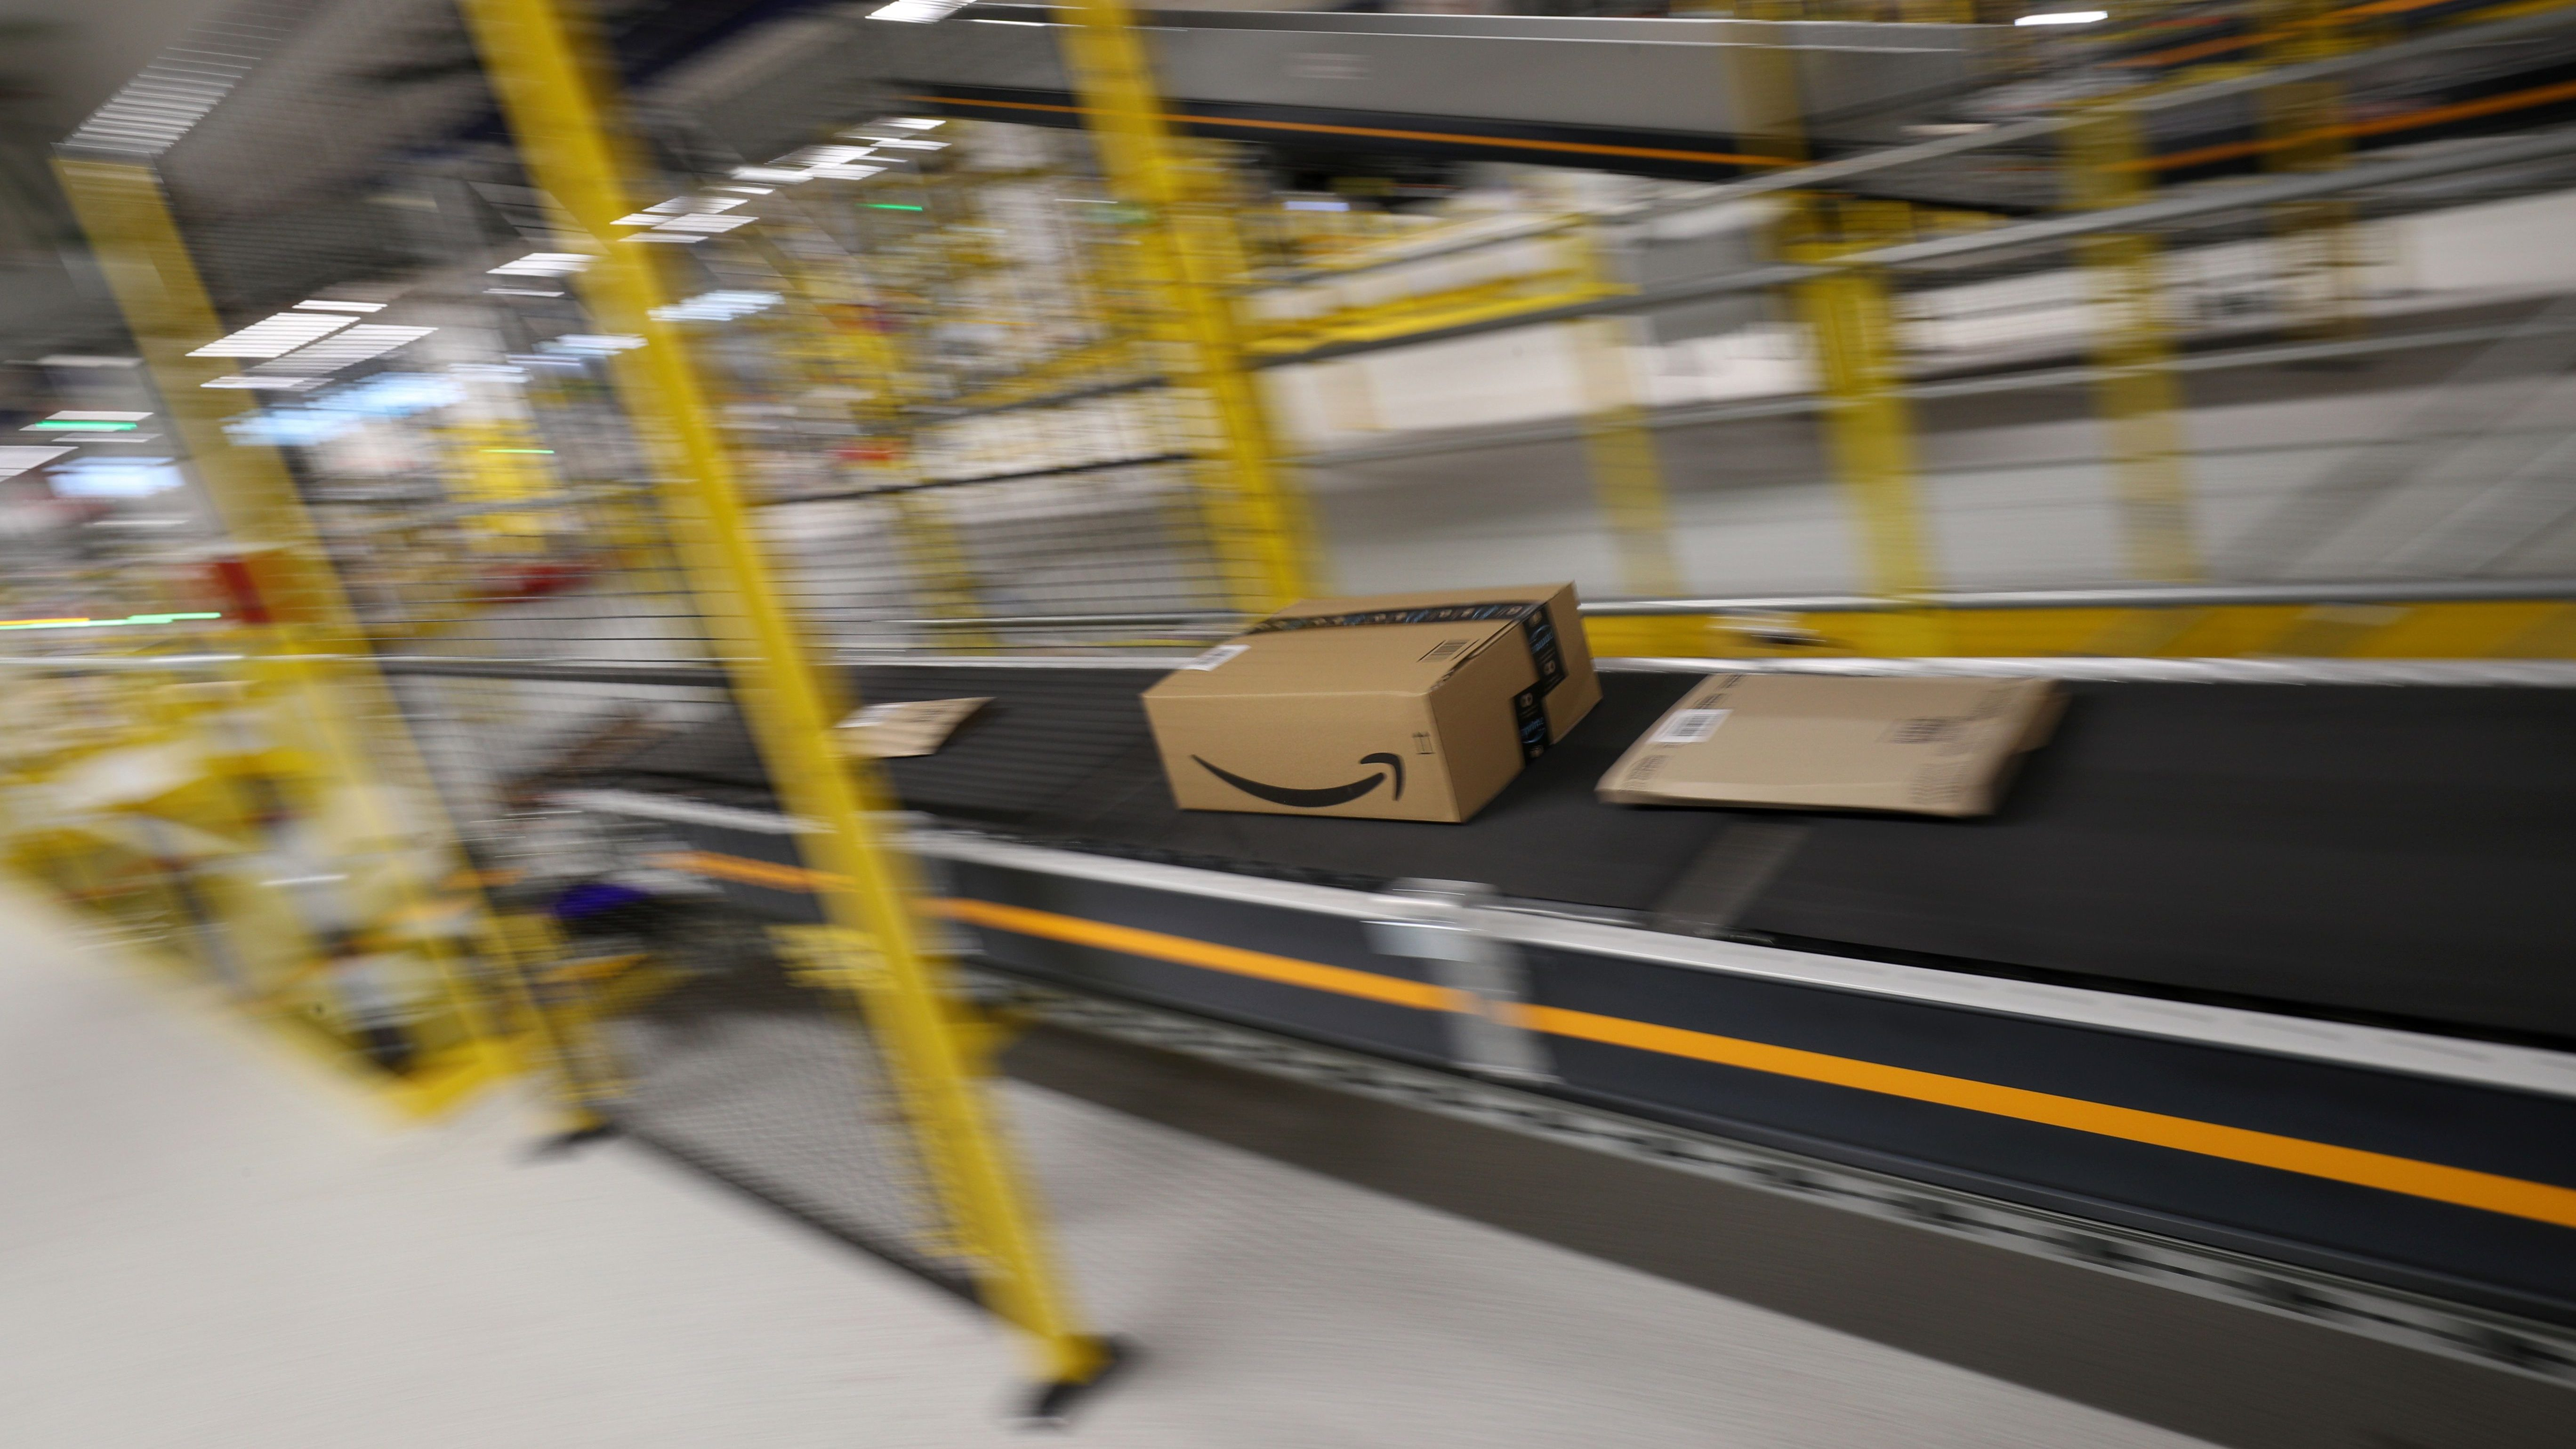 Boxes are moved on conveyor belts at Amazon distribution center in El Prat de Llobregat, near Barcelona, Spain, March 15, 2018. REUTERS/Albert Gea - RC1F1F177600